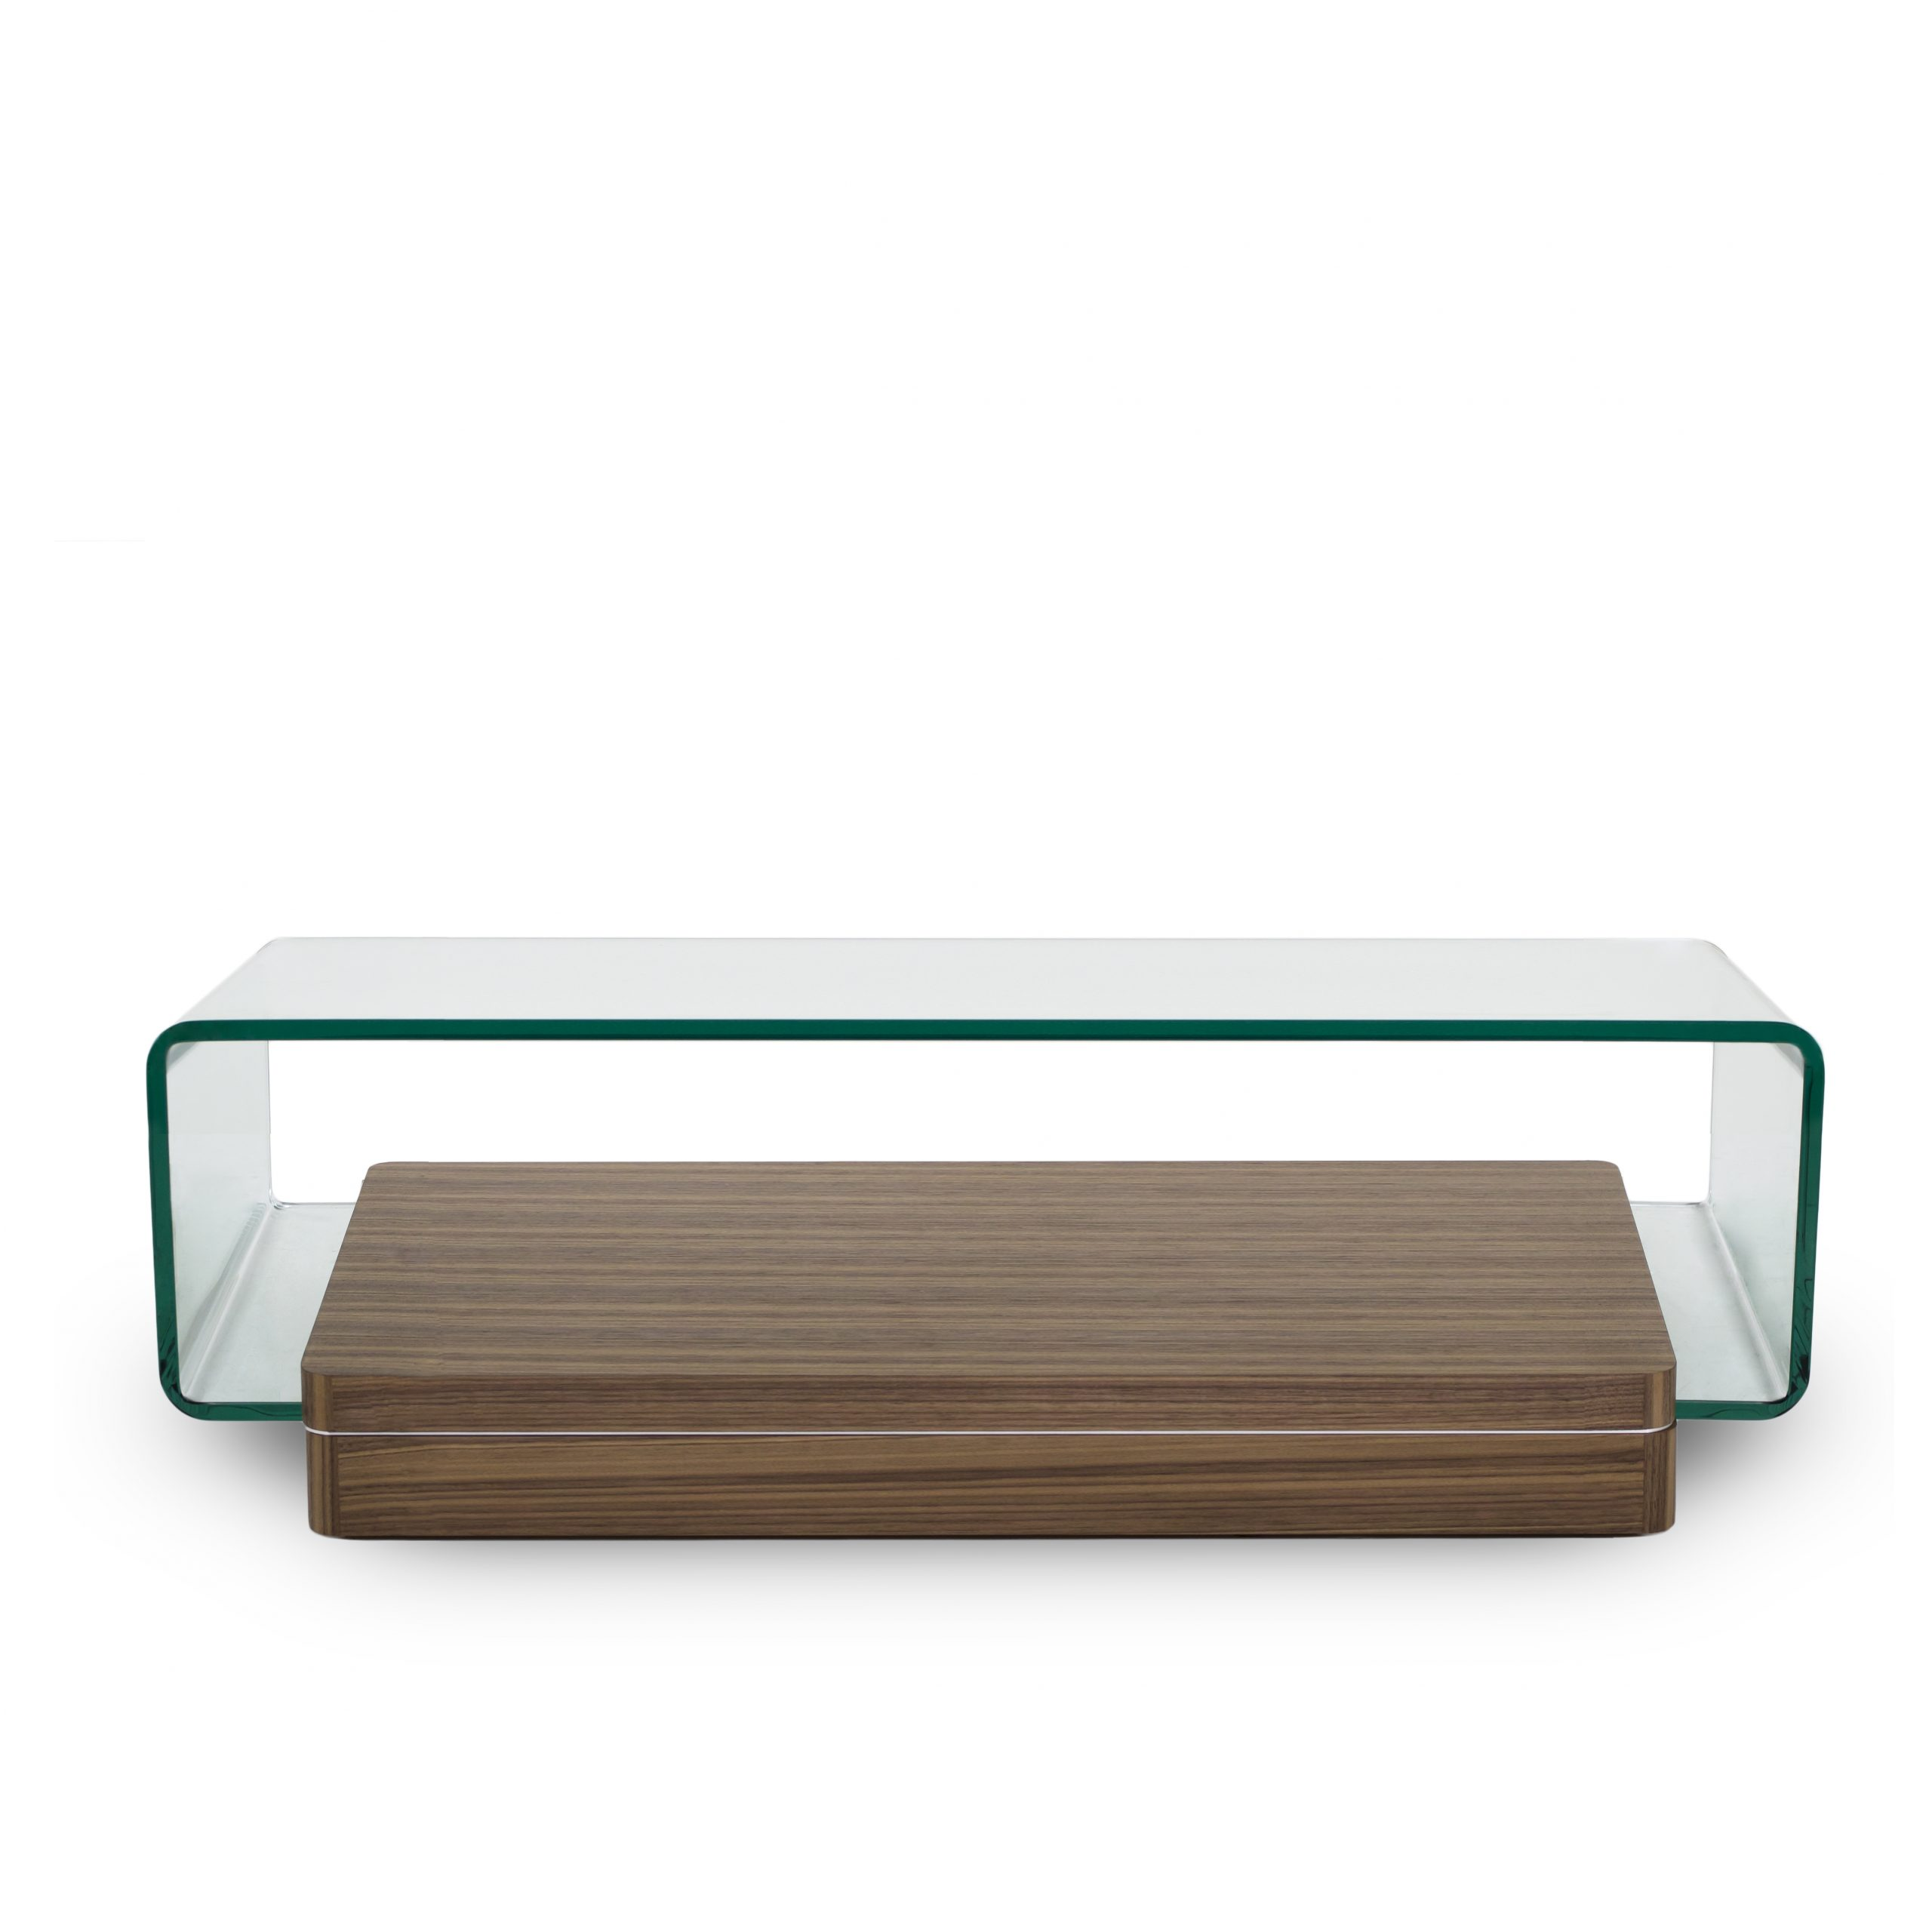 Lepage Coffee Table Scandesigns Furniture